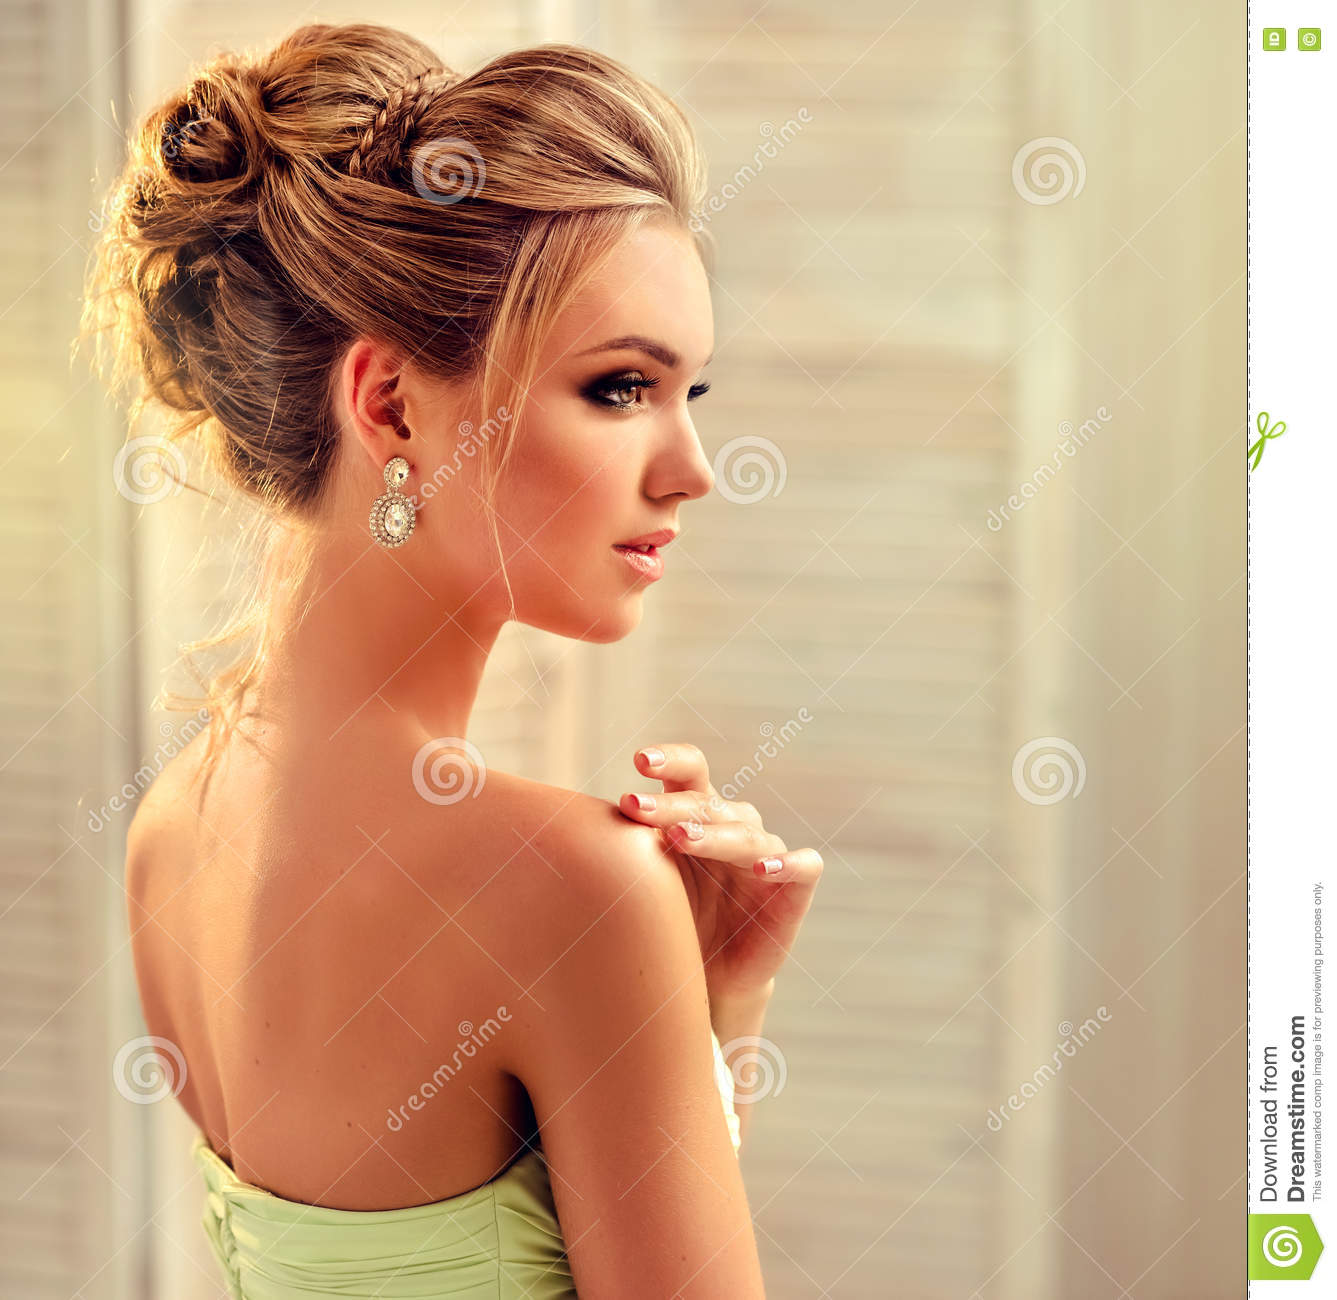 Woman With Blond Hair, Wears In A Wedding Gown. Stock Photo - Image ...